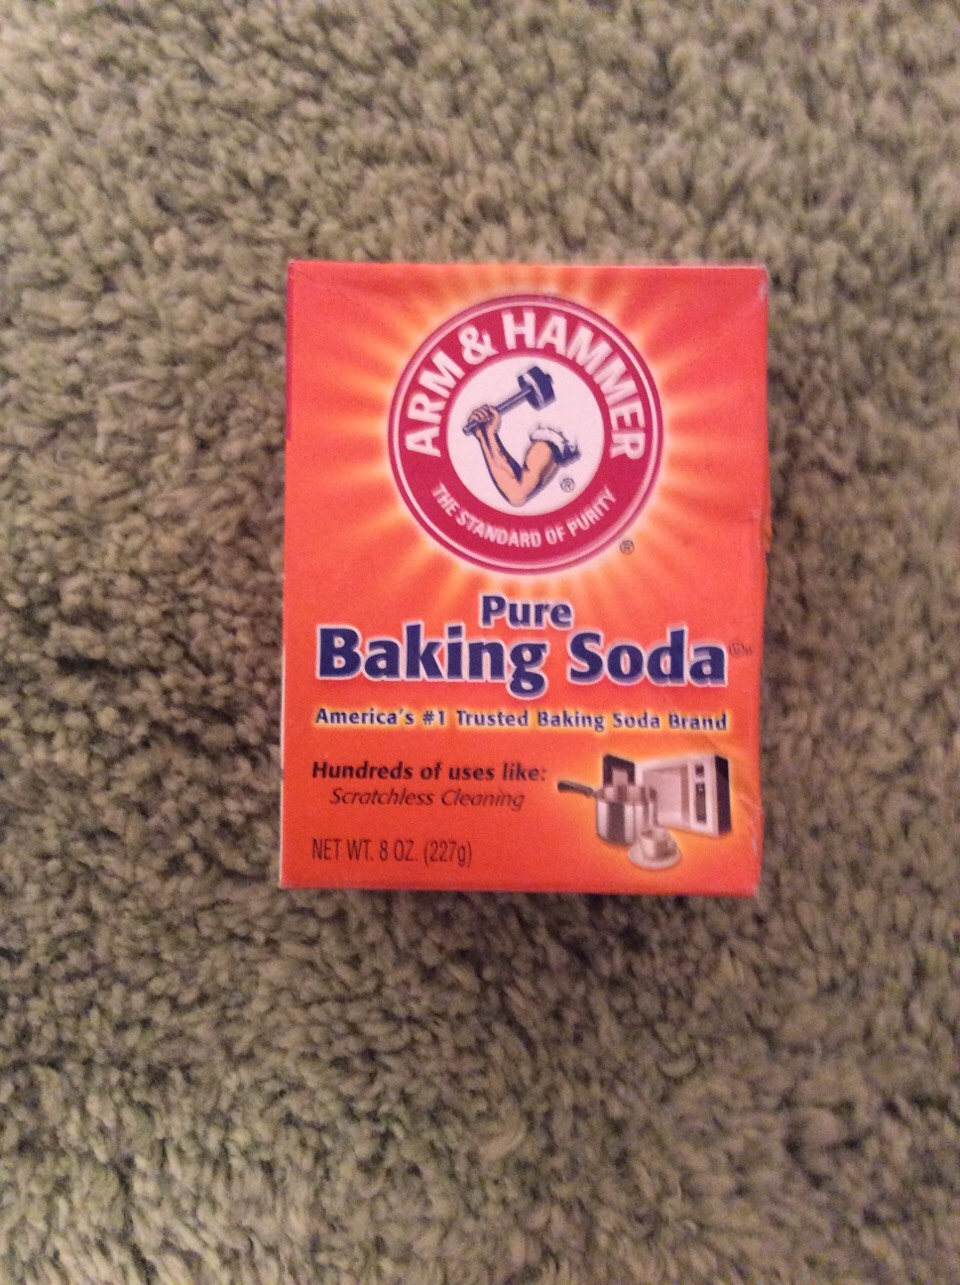 So this is what I'm doing! You need baking soda!!!!   Ps: baking soda is a natural bleaching agent, can be used in many things, for many things ex: teeth whitening(lemon juice baking soda paste) clay making (porcelain clay art) to loosen dandruff, and  also used as dry shampoo!